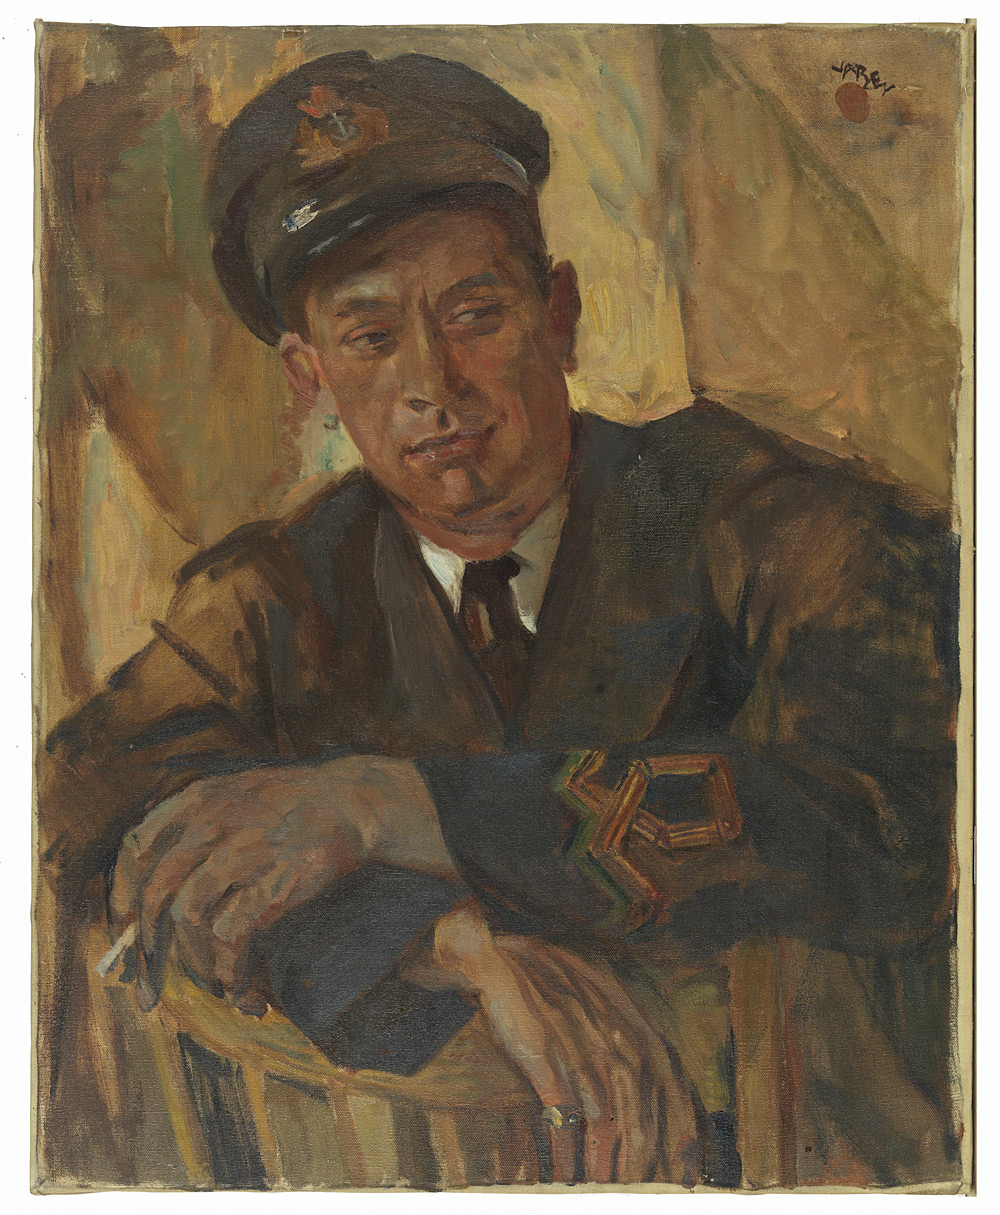 Portrait of a Naval Officer, Harry Kelman